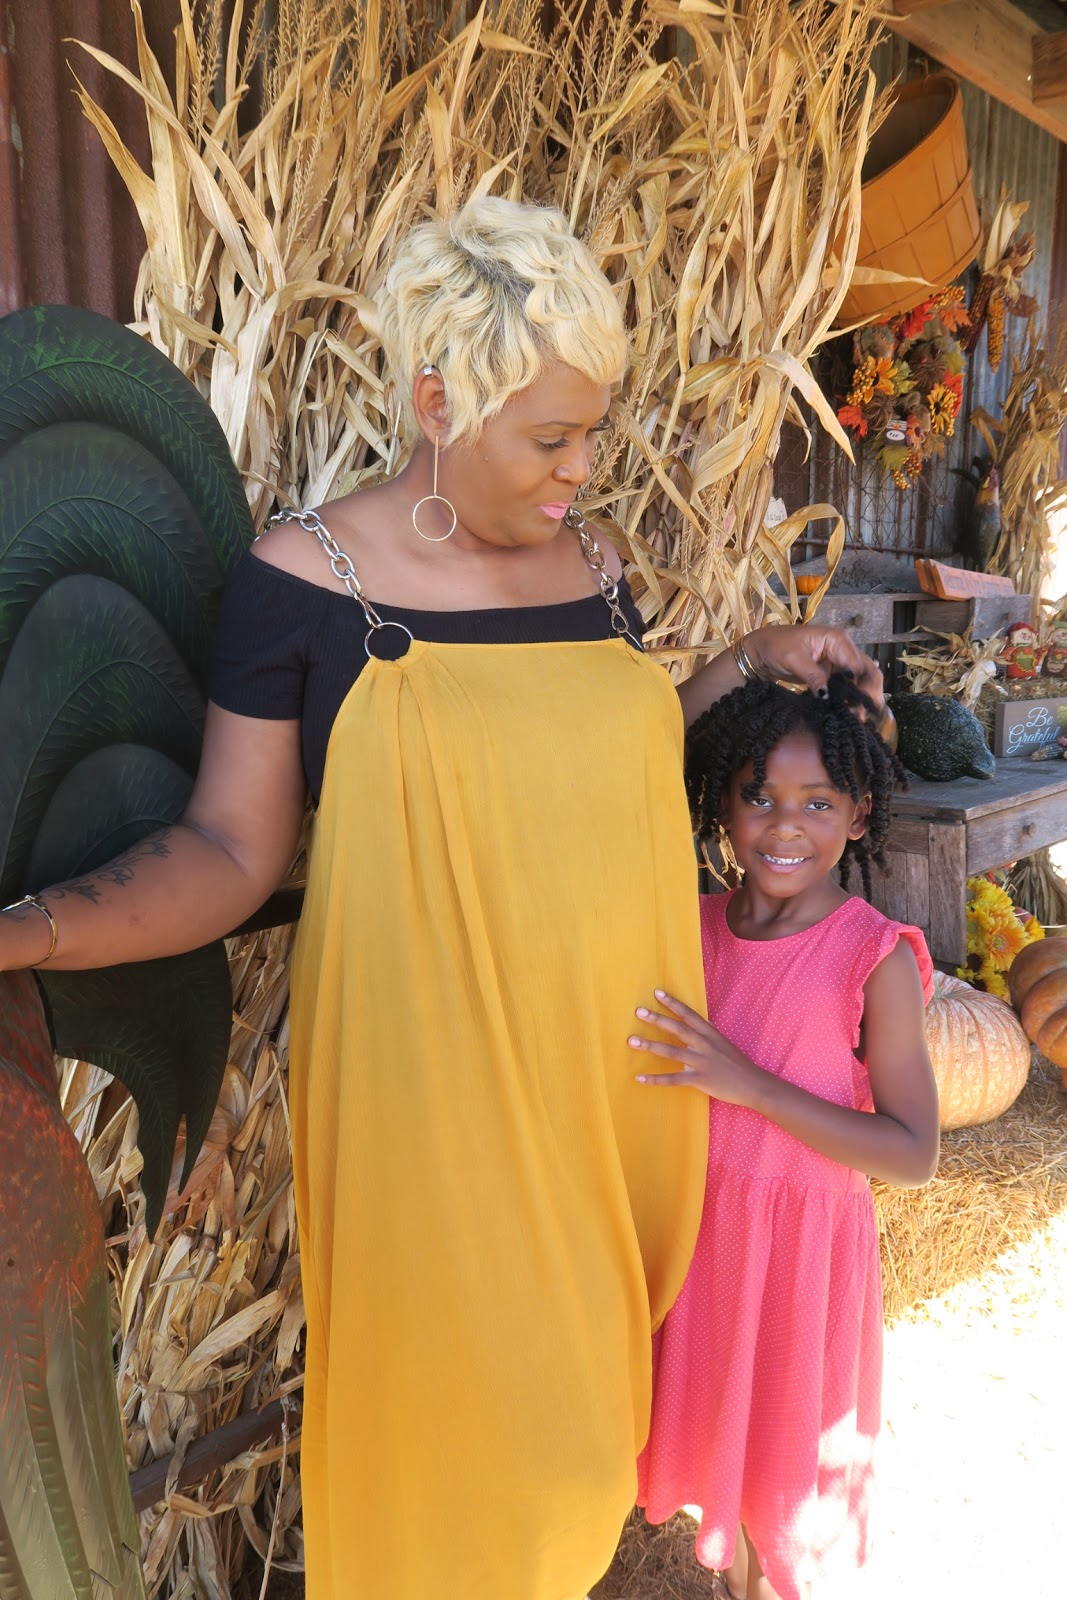 Image: Mother and daughter pose at Hall's Pumpkin Patch. Mom is sharing their fall family traditions and date ideas.